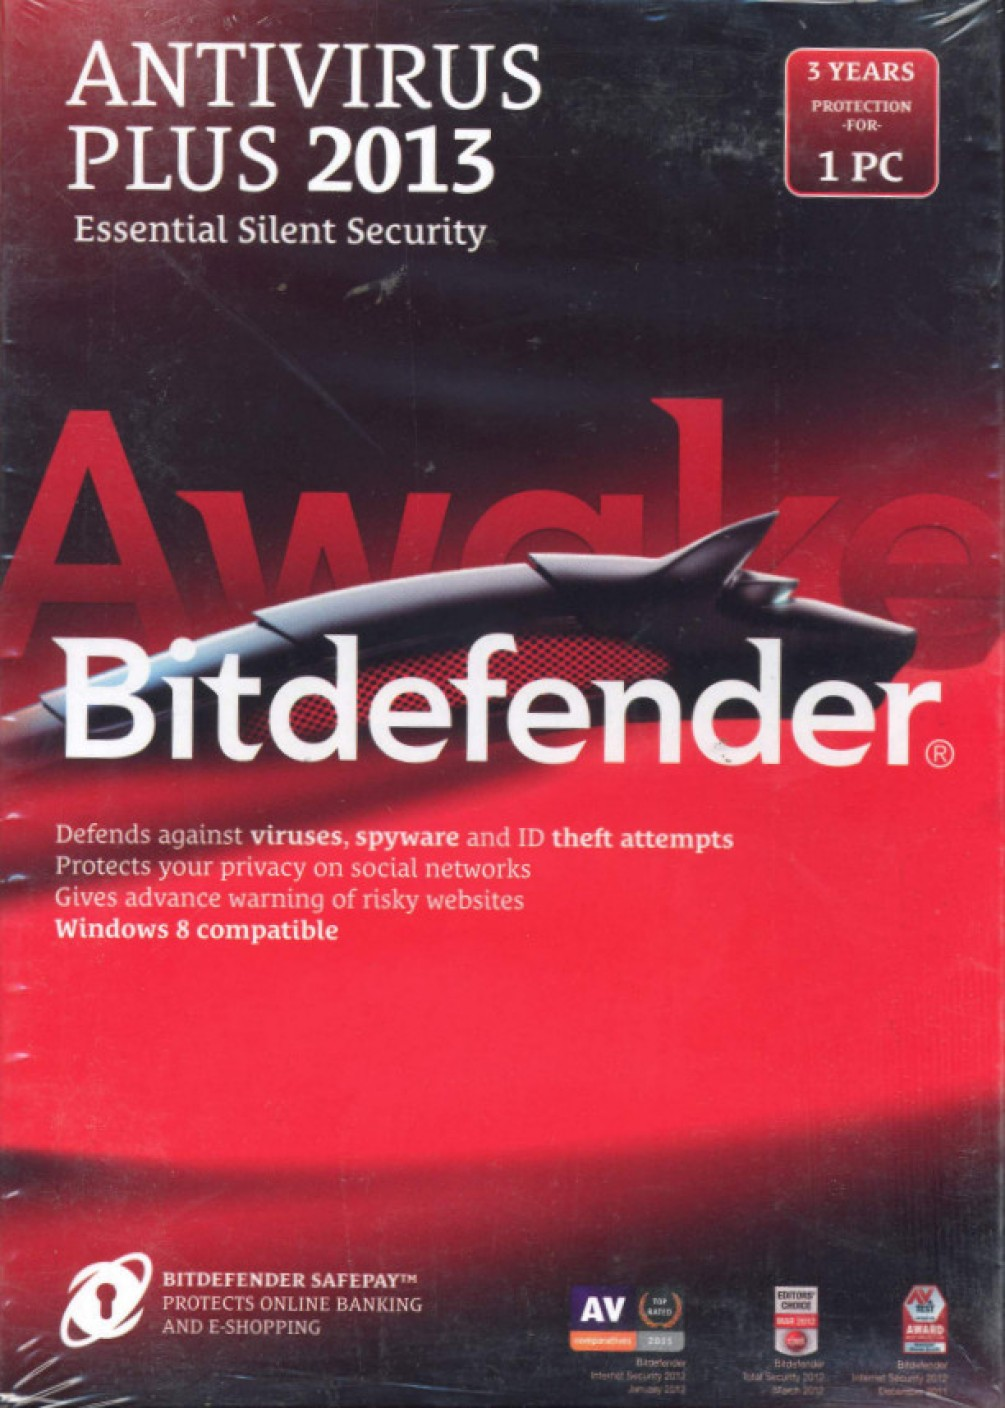 Bitdefender Antivirus Plus 2013 1 PC 3 Years - Buy Bitdefender Antivirus Plus 2013 1 PC 3 Years ...